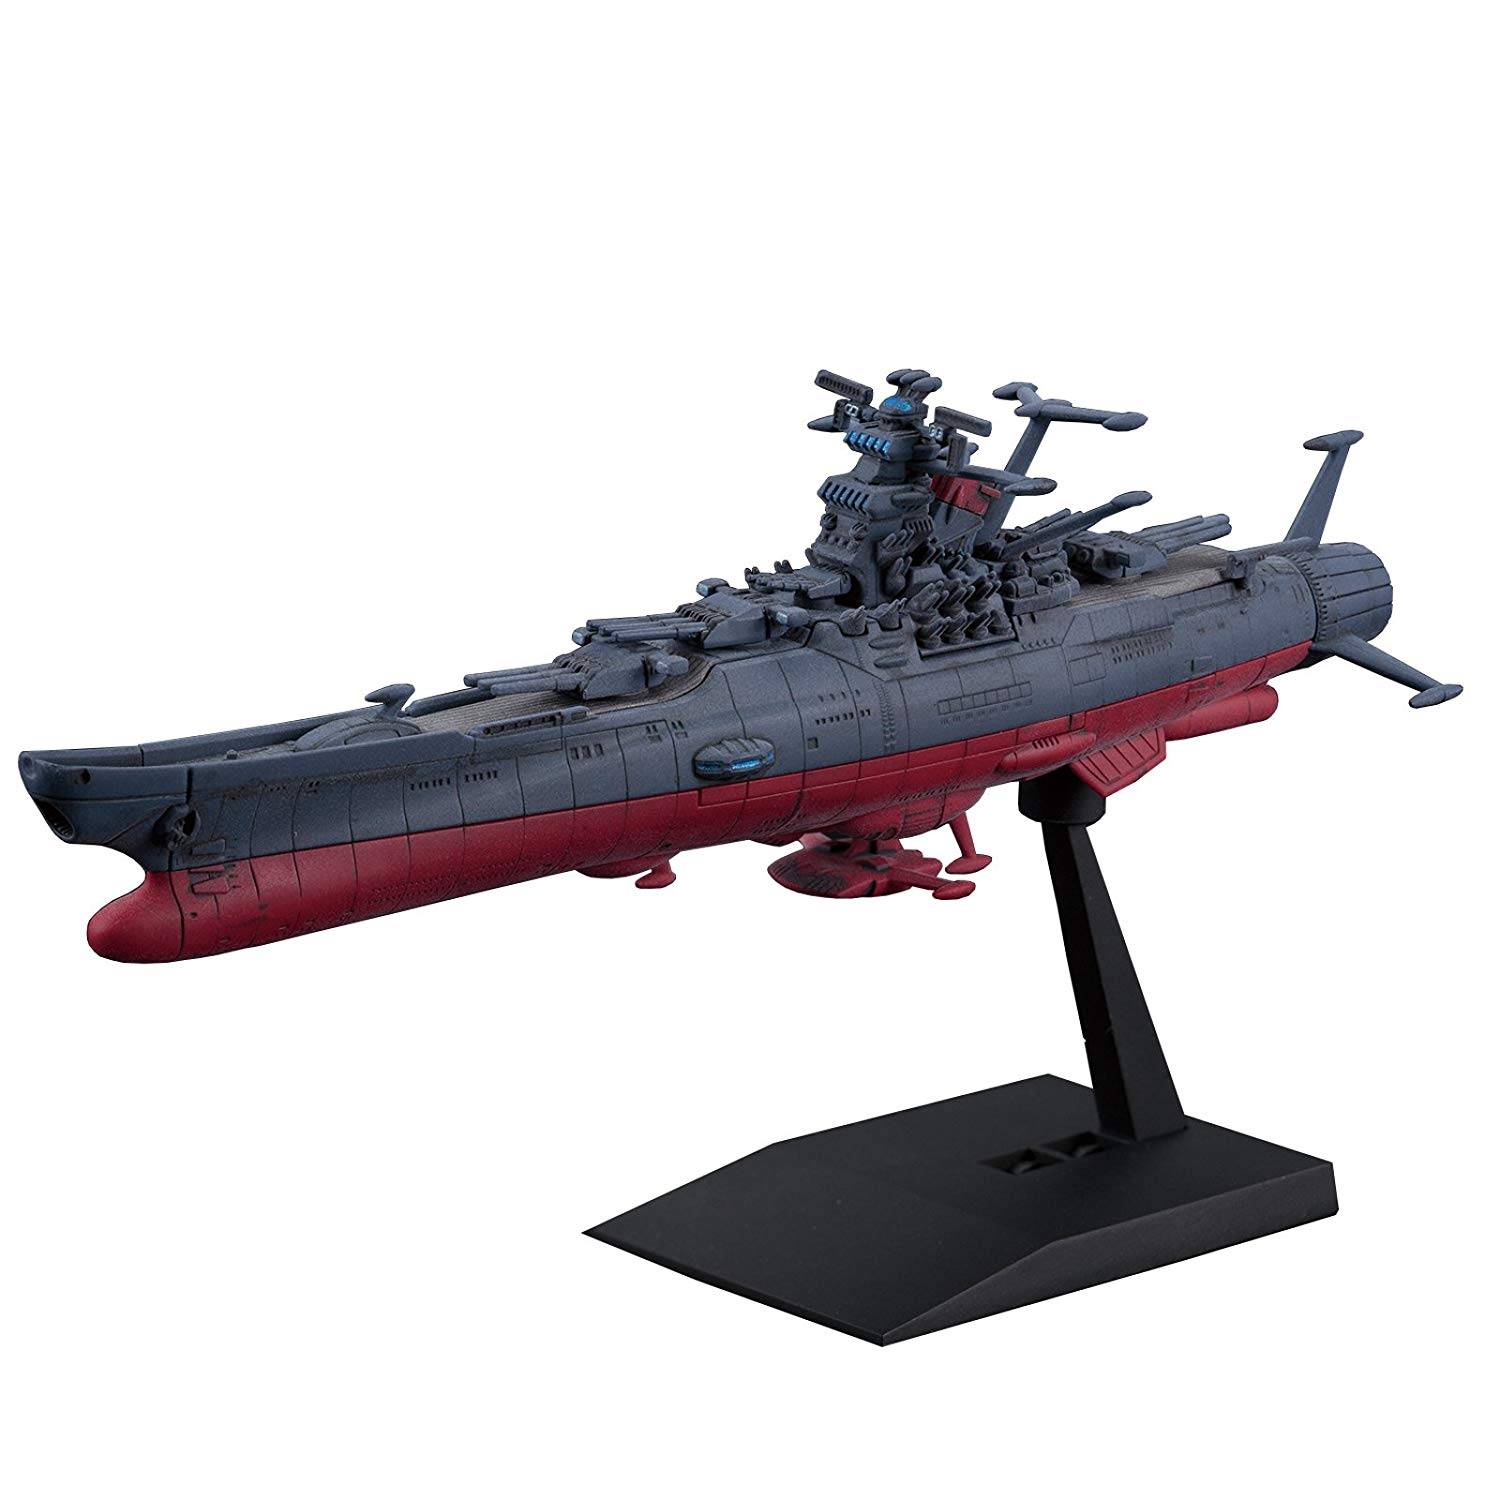 "BANDAI MODEL KITS 221062 U.N.C.F. SPACE BATTLESHIP YAMATO 2202 ""SPACE BATTLESHIP YAMATO 2202"" BANDAI MECHA COLLECTION BAN221062"